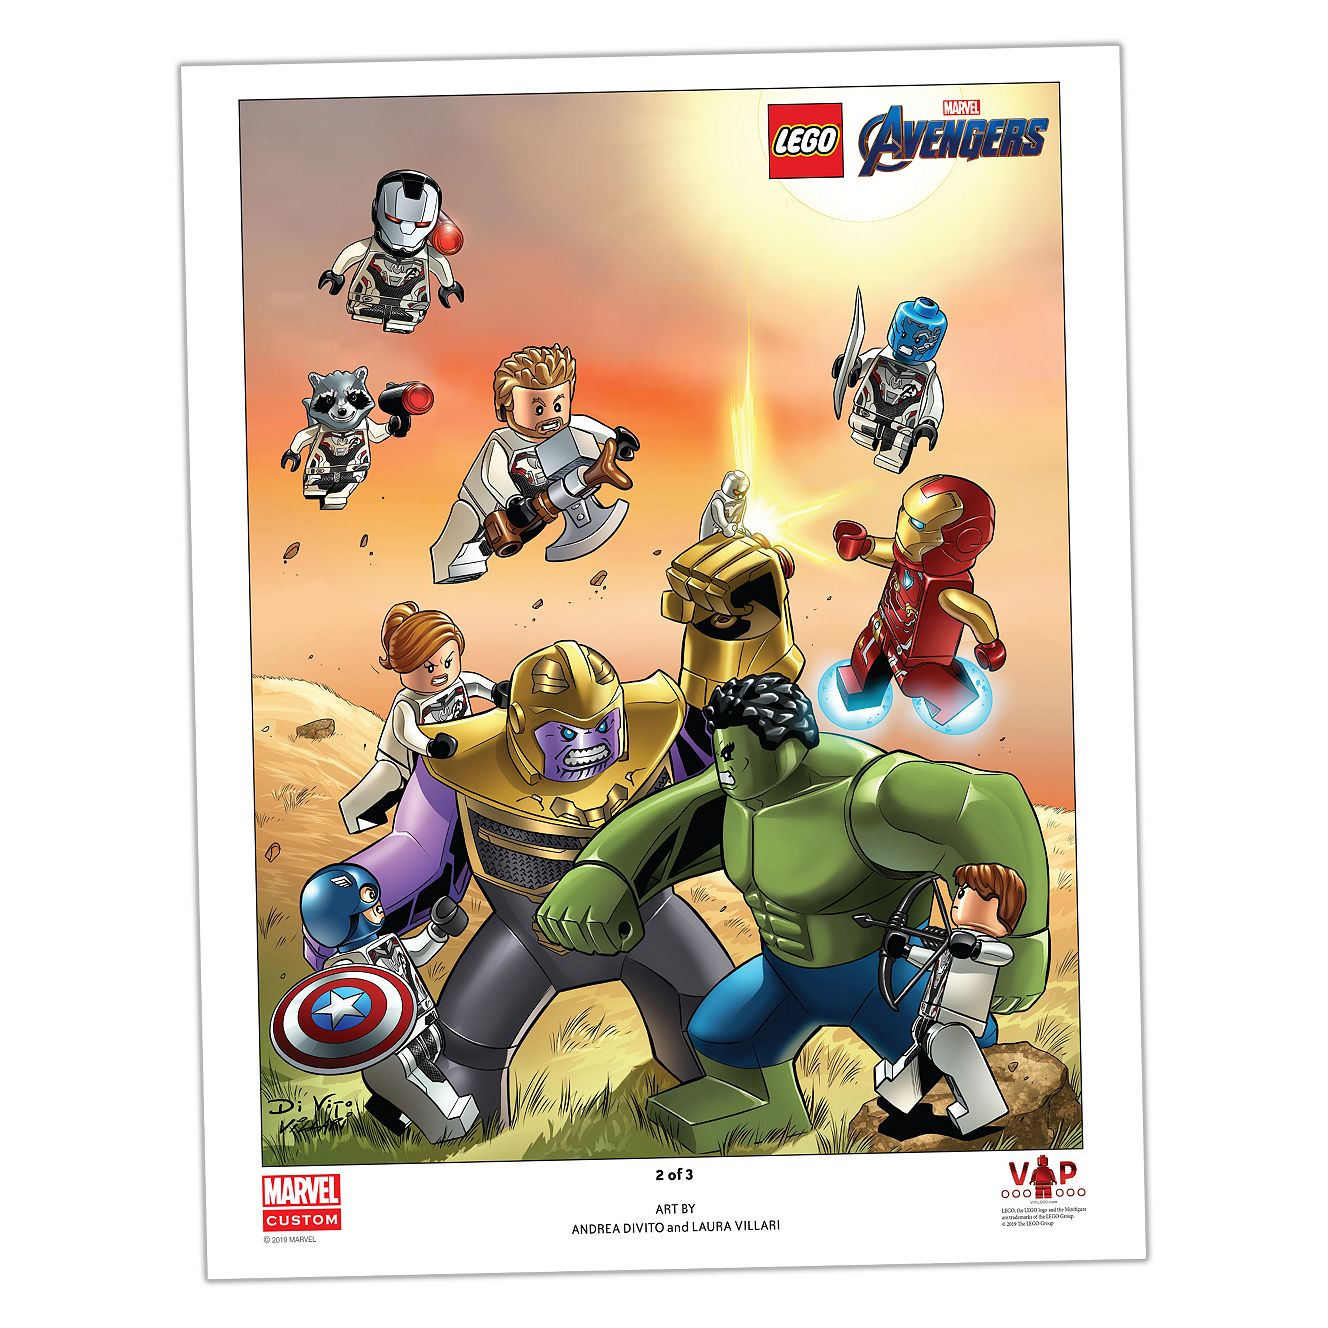 LEGO® Avengers: Endgame art print 2 of 3 5005881 | UNKNOWN | Buy online at  the Official LEGO® Shop US